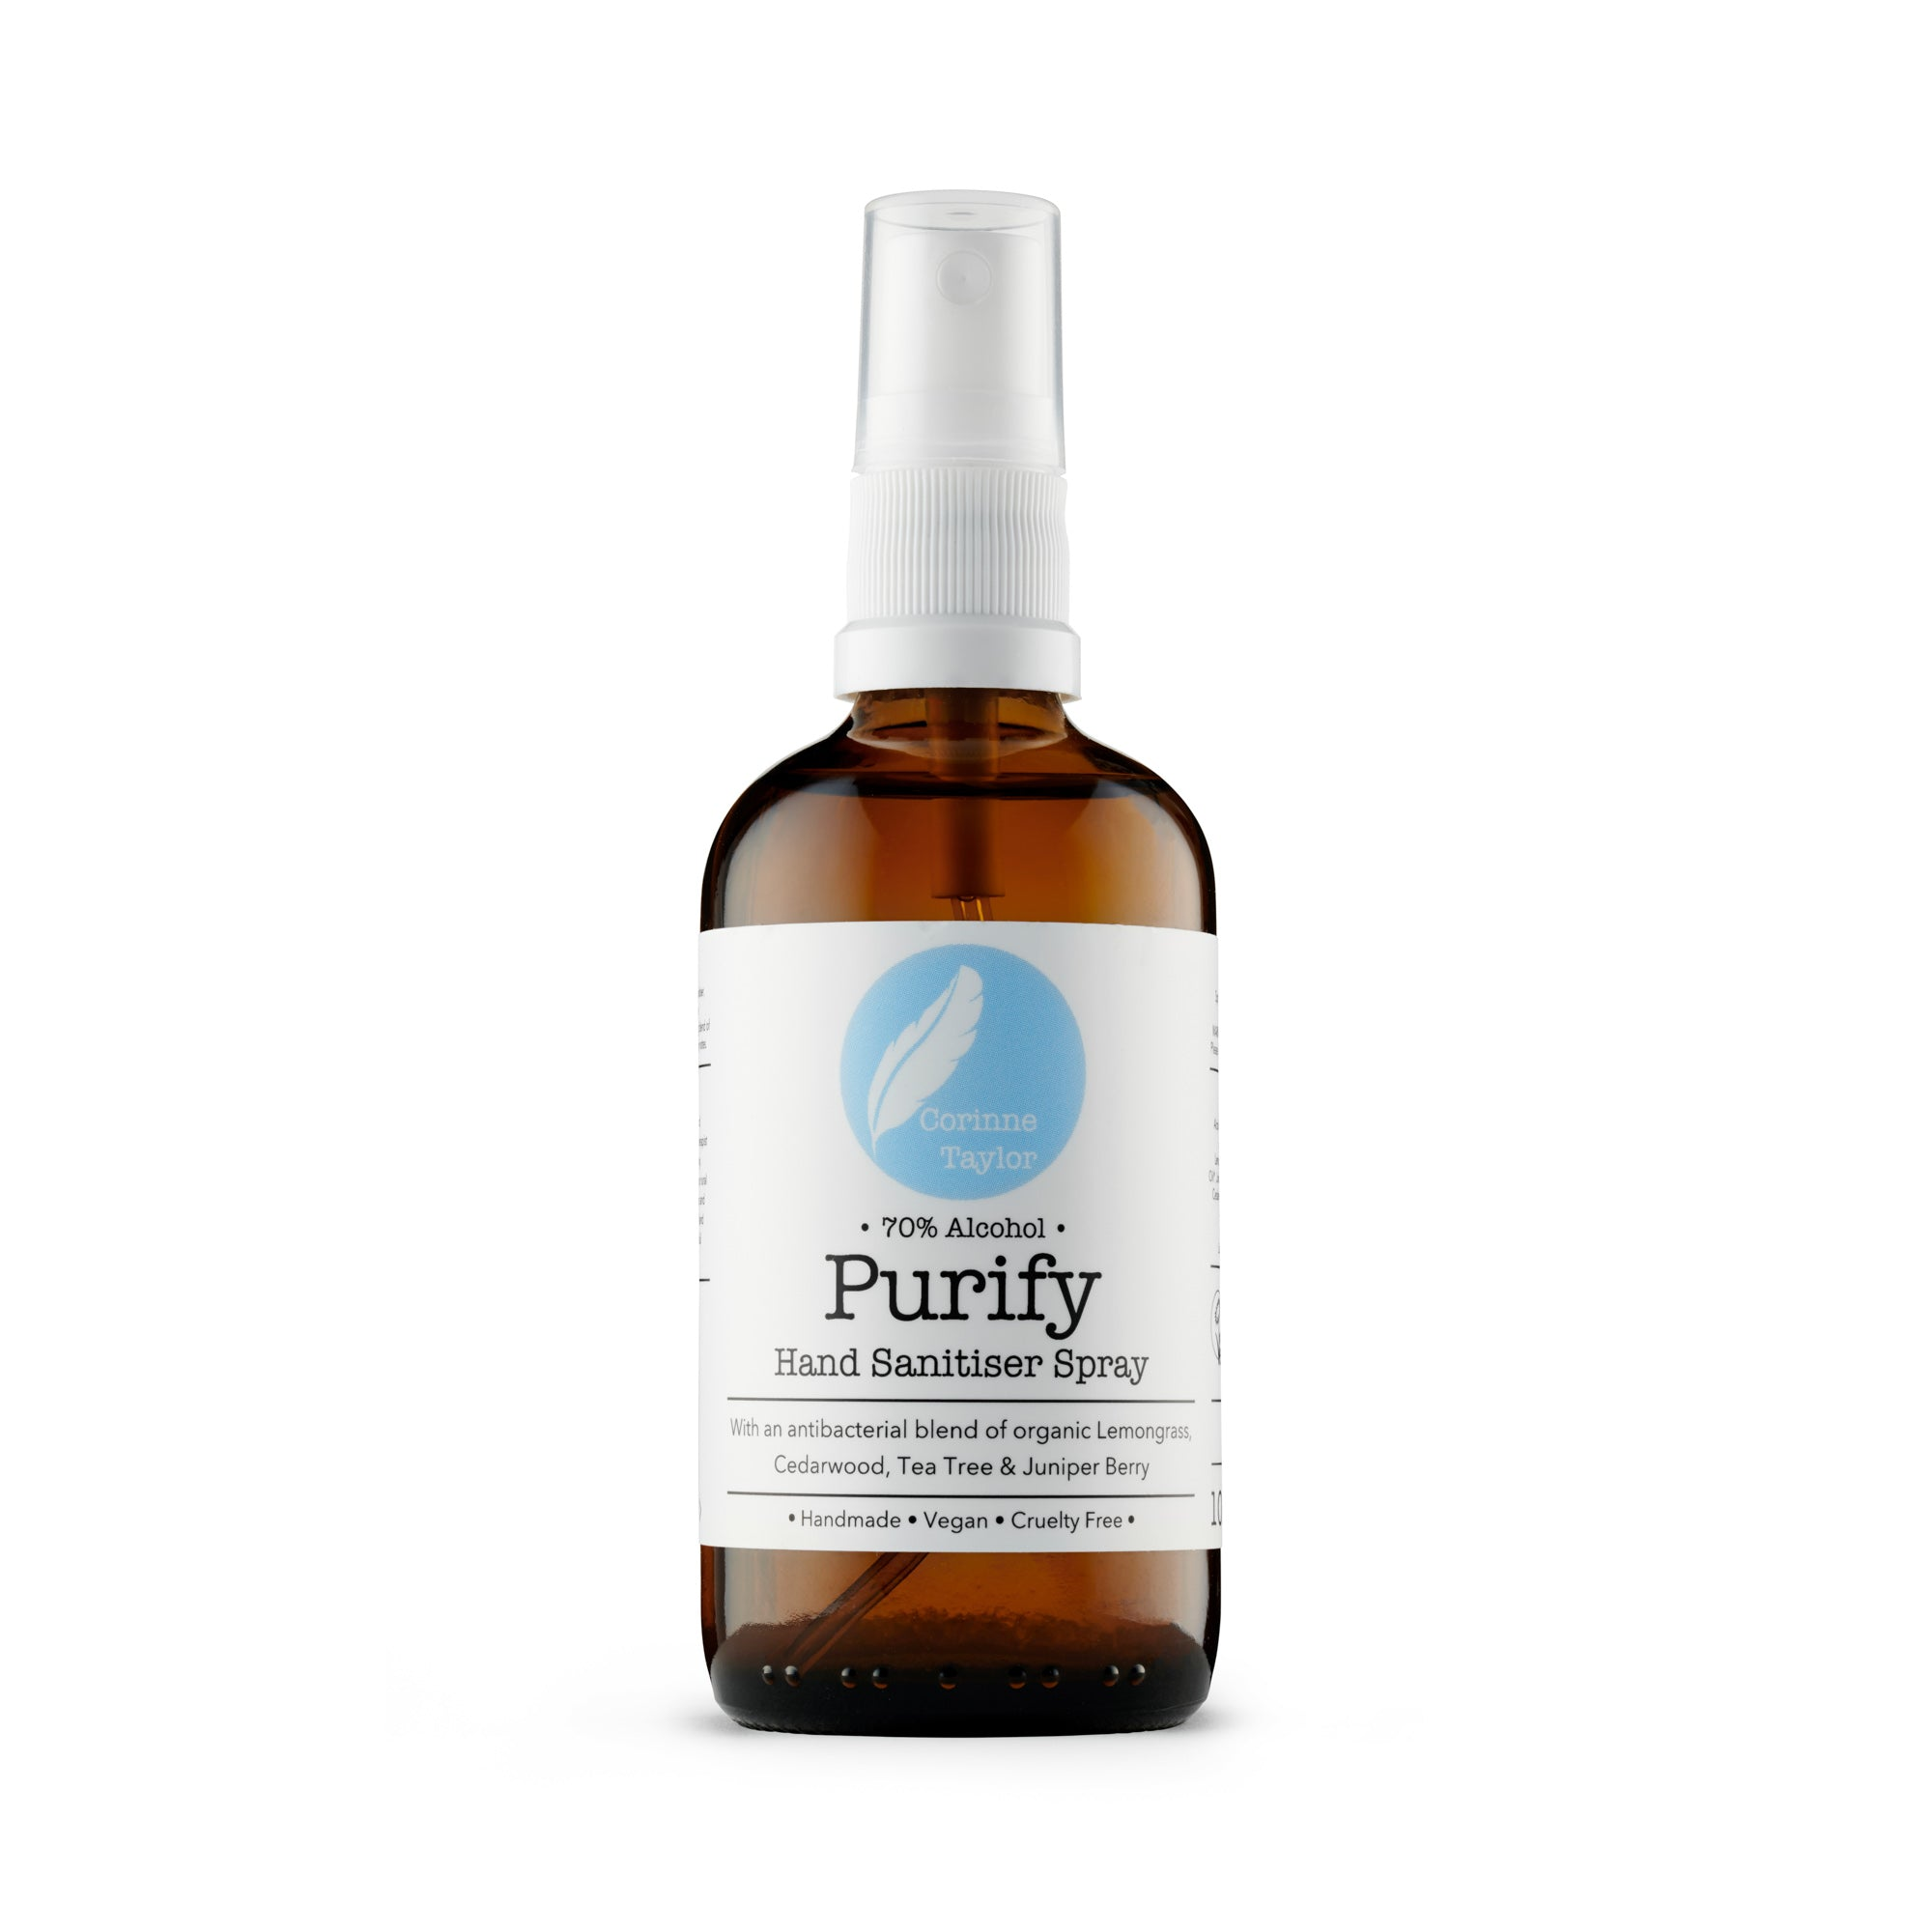 Purify cleansing hand sanitiser by Corinne Taylor. 100% natural, vegan, cruelty free, organic. 70% alcohol with antibacterial tea tree, lemon, lemongrass, juniper berry and cedarwood essential oils.